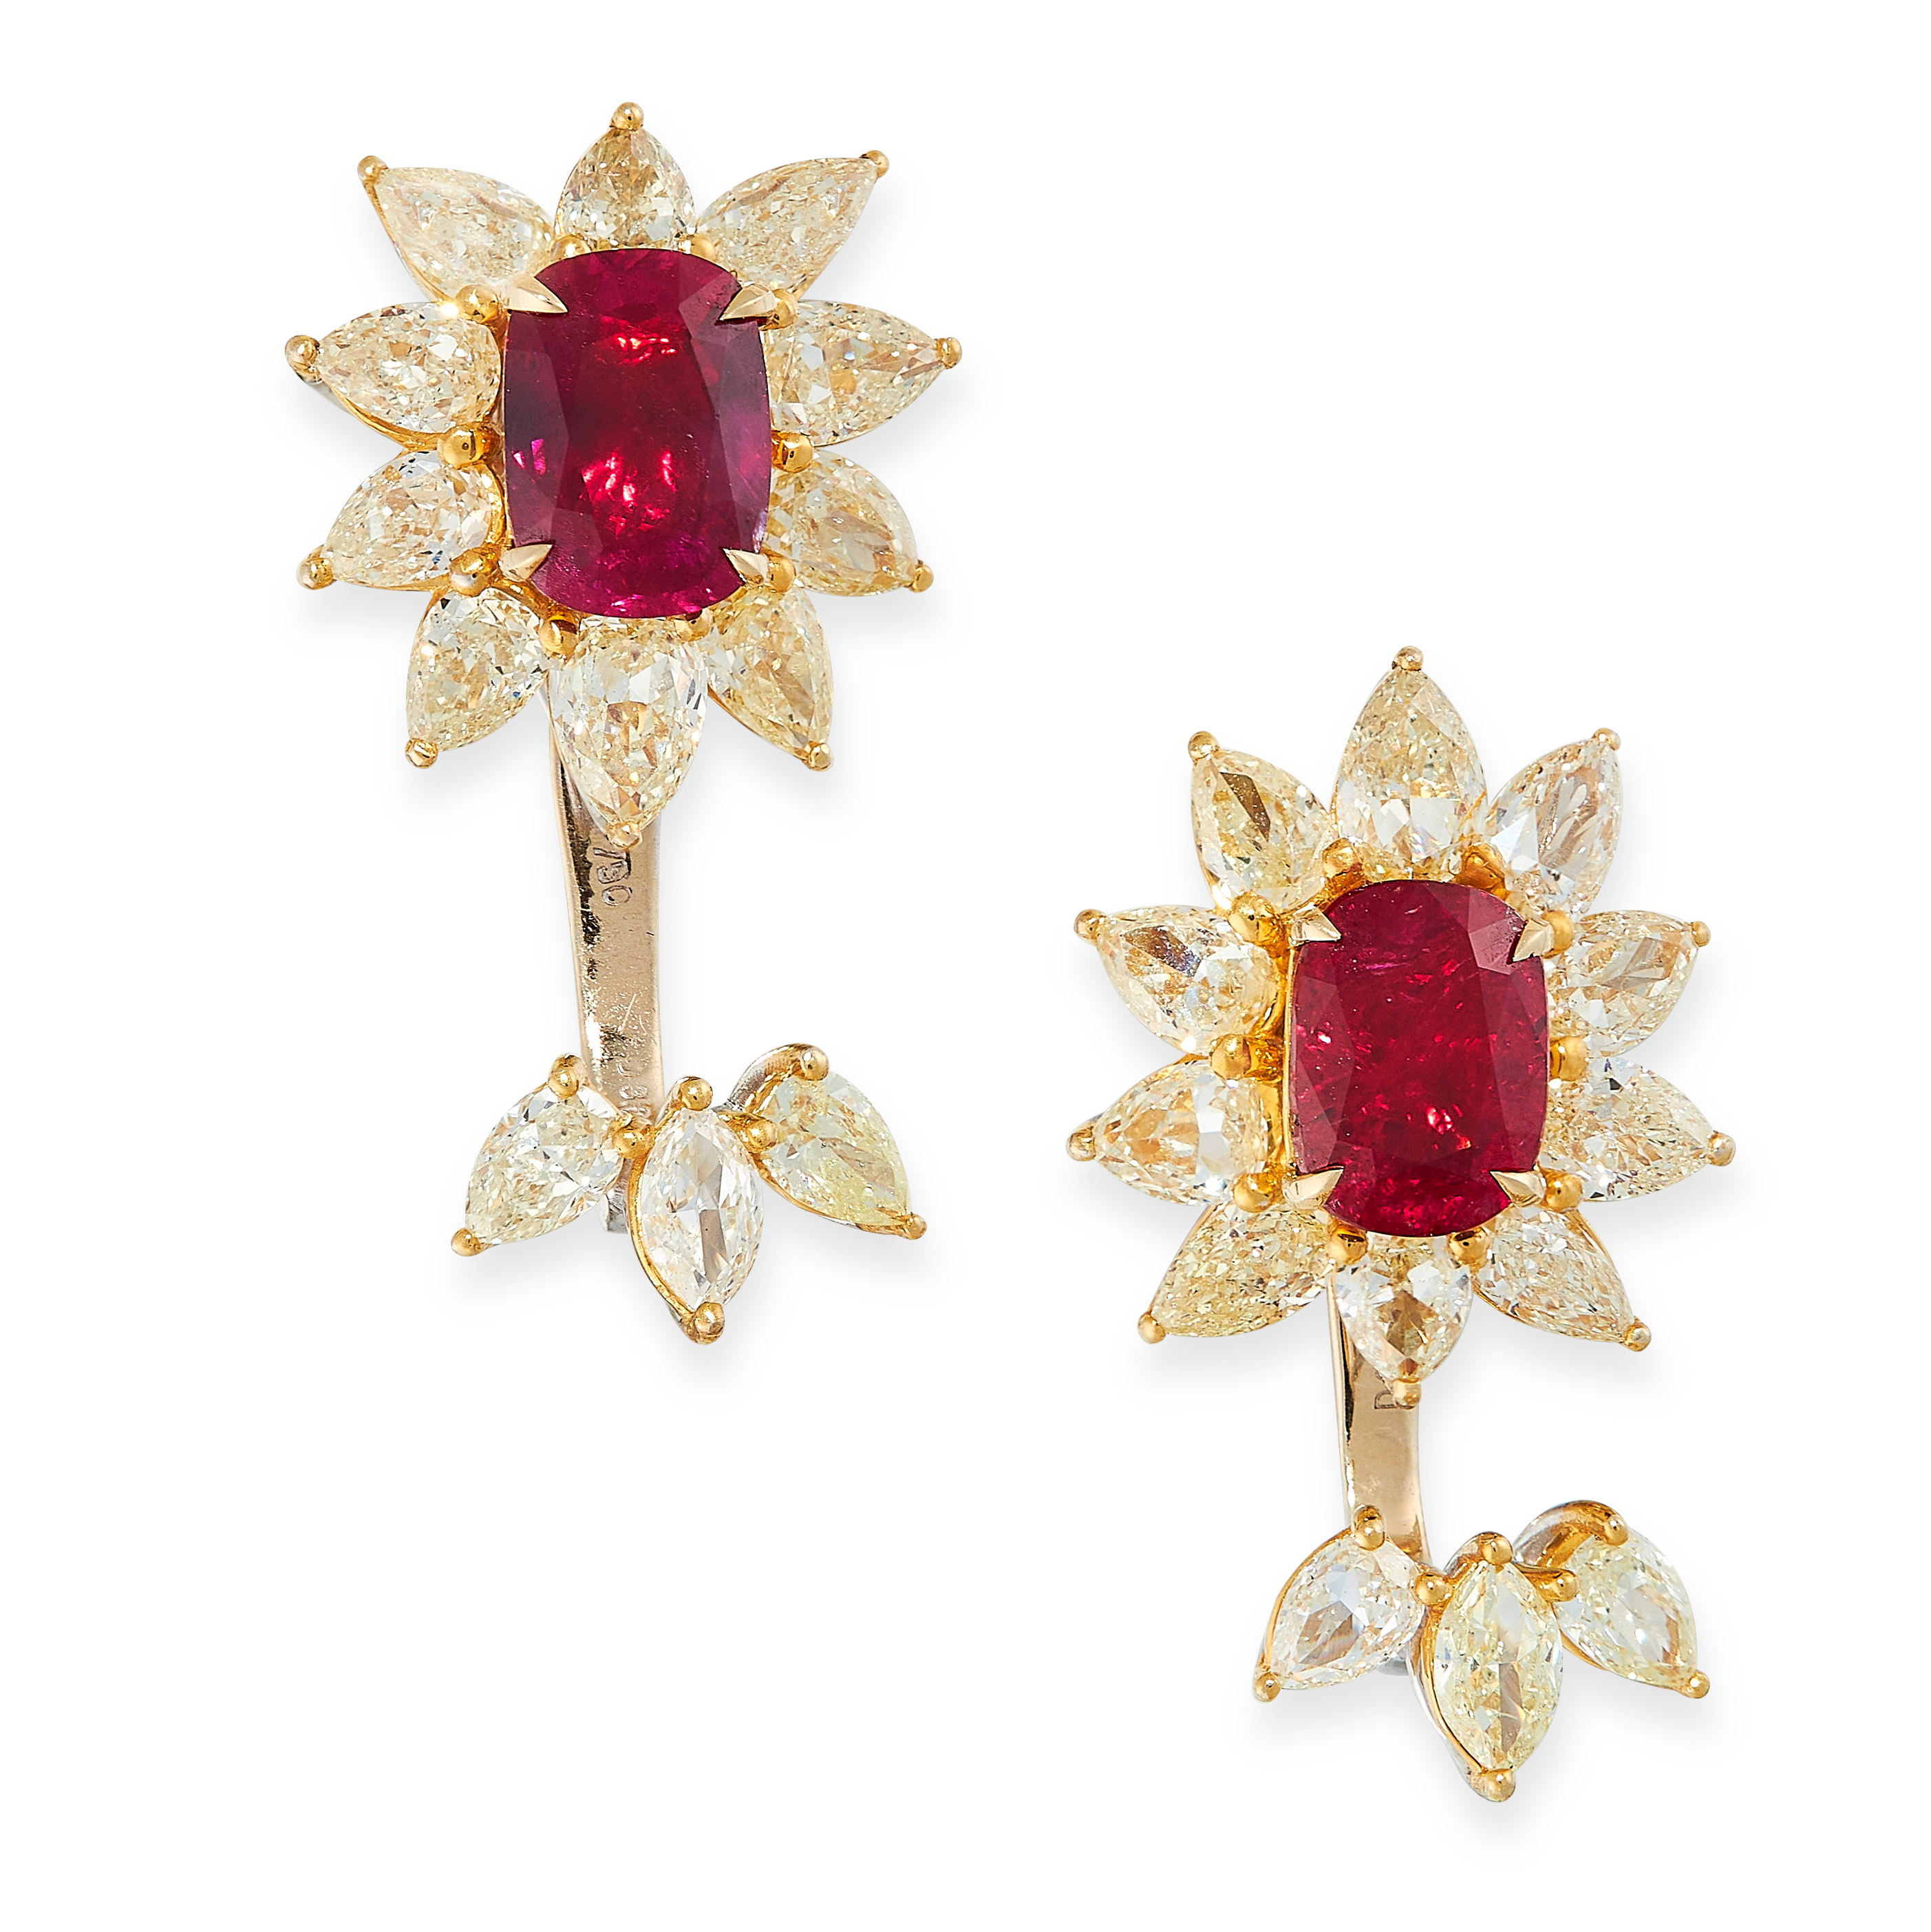 PAIR OF UNHEATED RUBY AND DIAMOND EARRINGS each set with a cushion cut ruby of 1.50 carats,